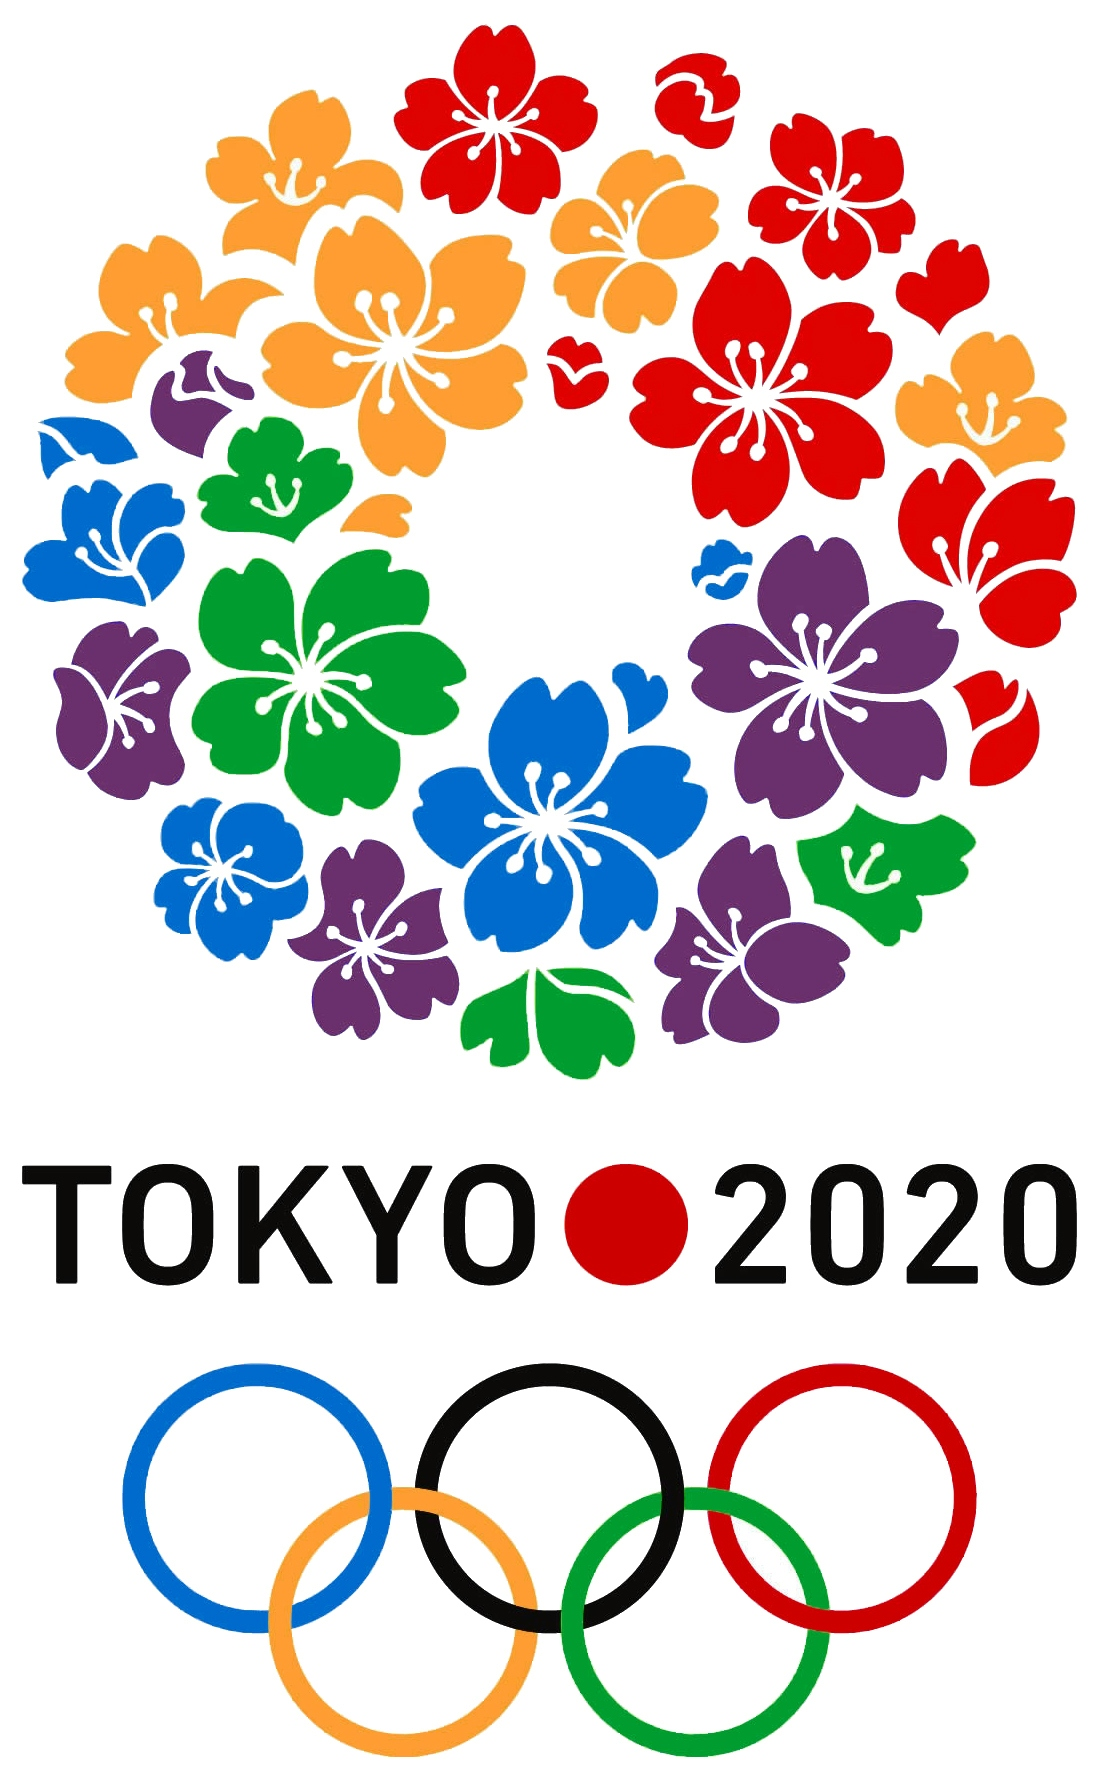 Poll: Which sport do you think Tokyo 2020 should choose to be part of the Olympic programme?